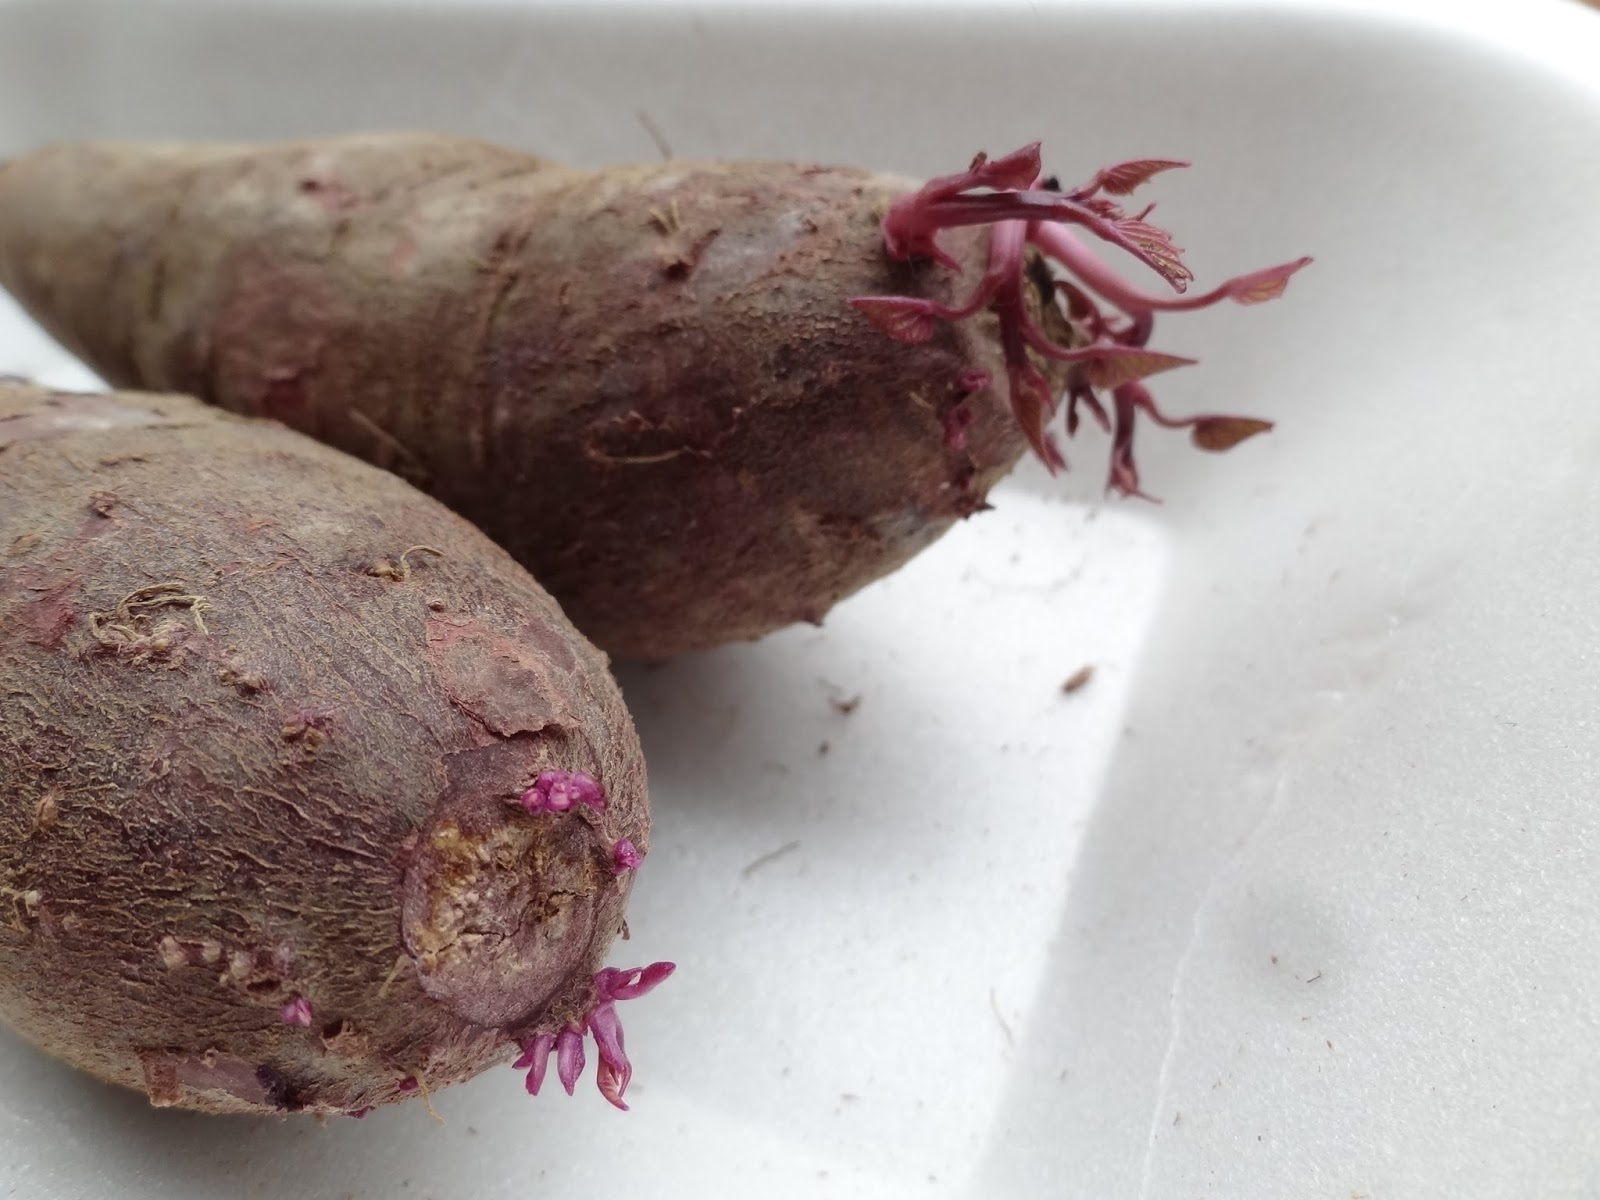 And Finally I Have A Of Small Purple Sweet Potatoes That Started To Sprout Am Going Try Growing Some Slips